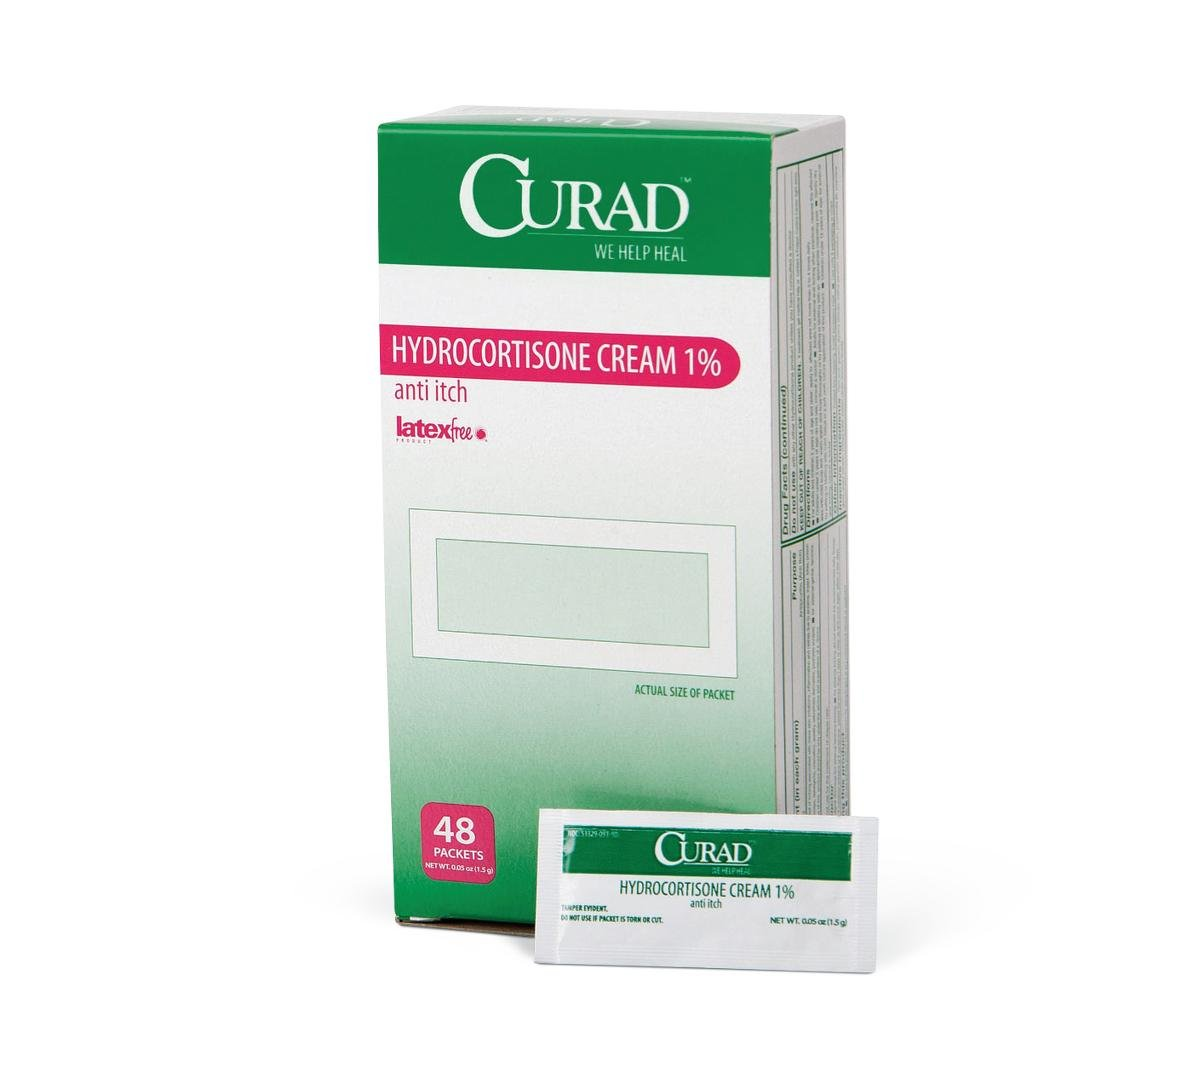 Medline CUR015408 Curad Hydrocortisone Cream 1%, 1.5 g Packets, 0.05 oz (Pack of 288) by Curad